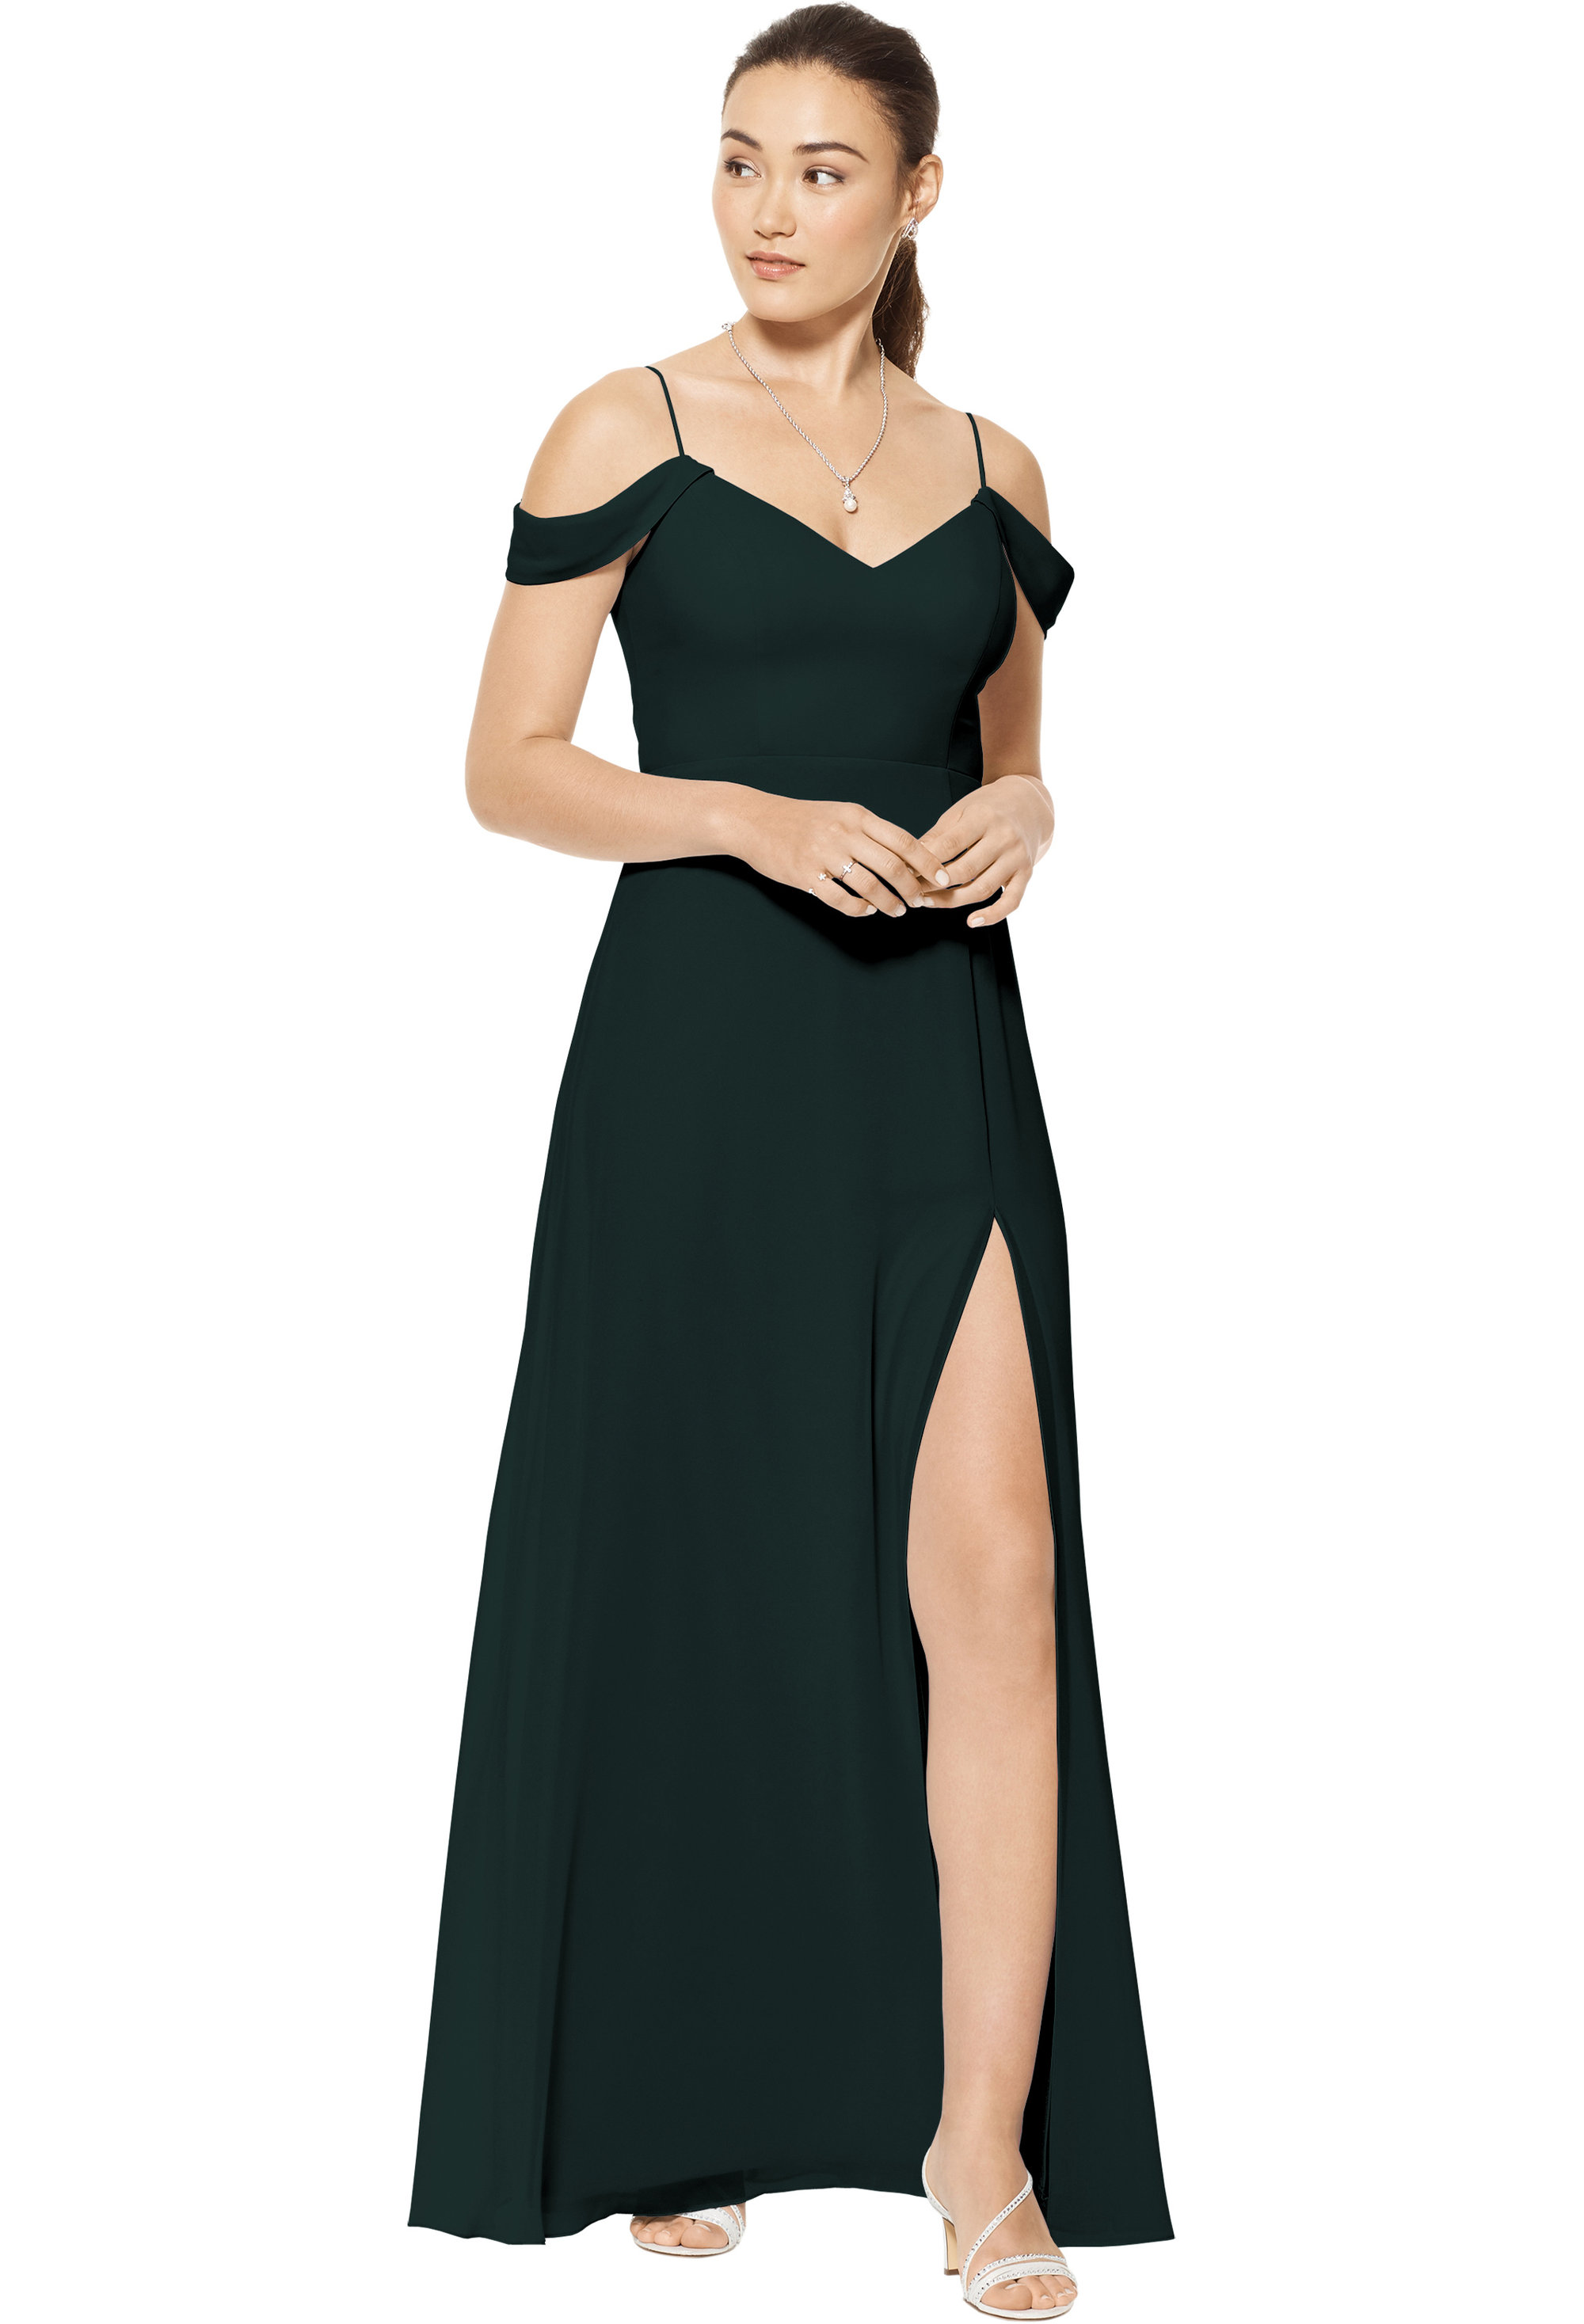 Bill Levkoff EVERGREEN Chiffon Sweetheart A-line gown, $150.00 Front